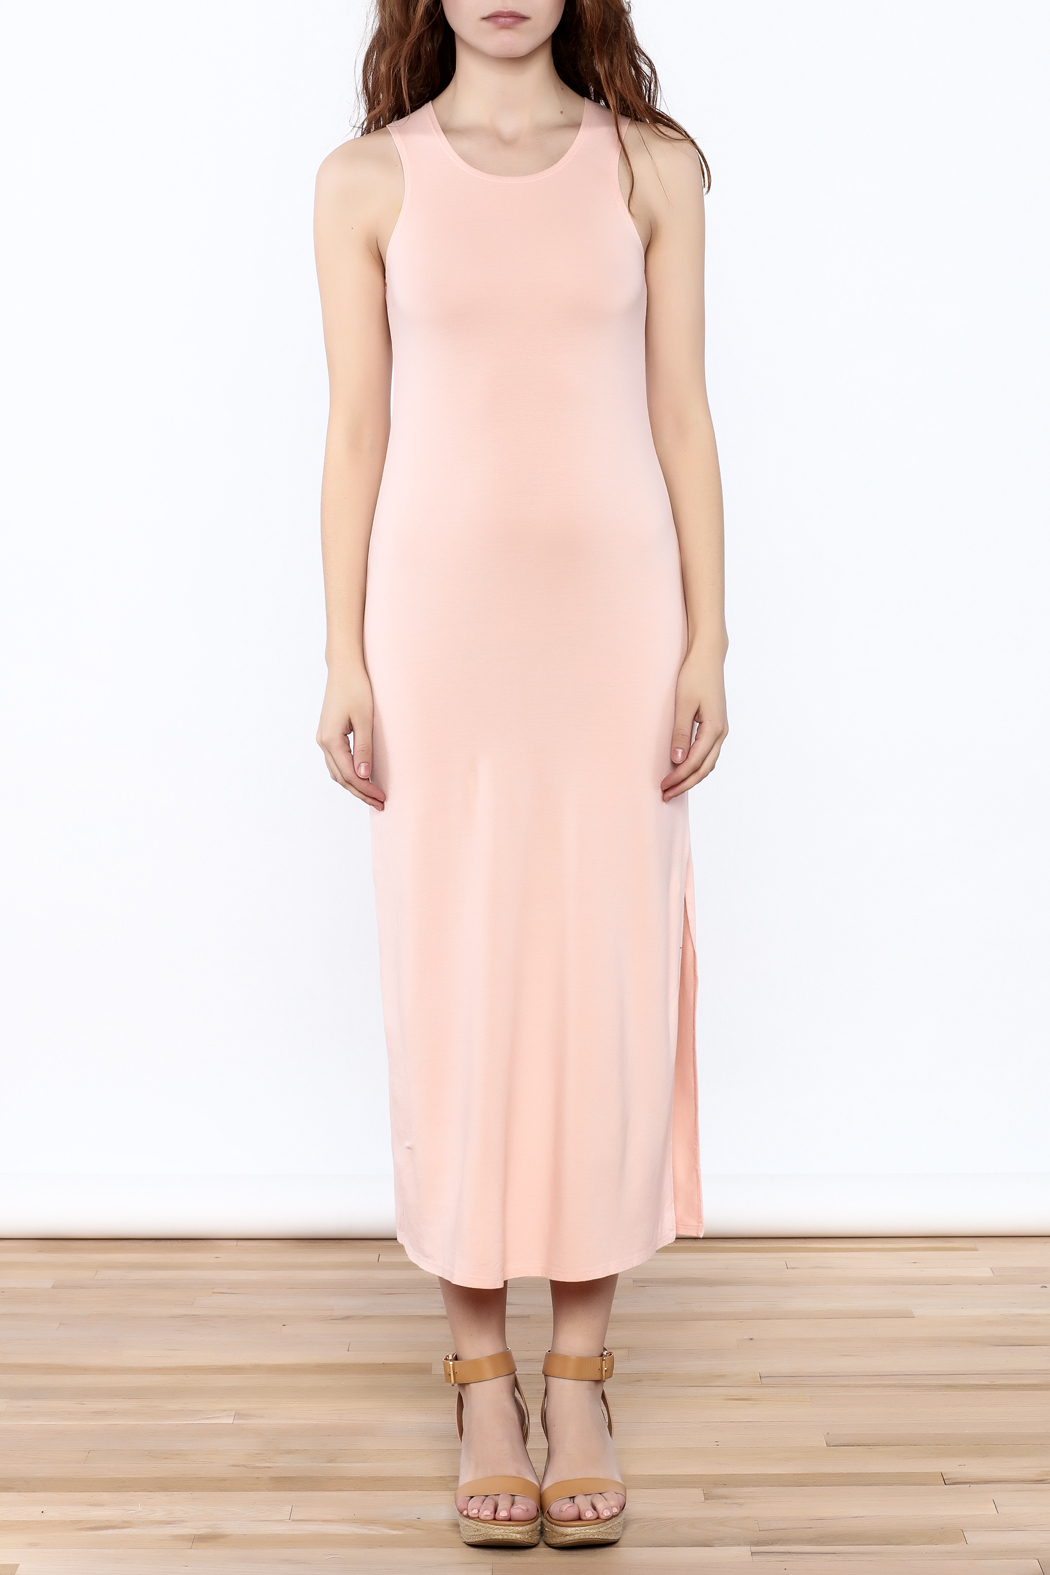 Groceries Apparel Powder Pink Maxi Dress - Front Cropped Image